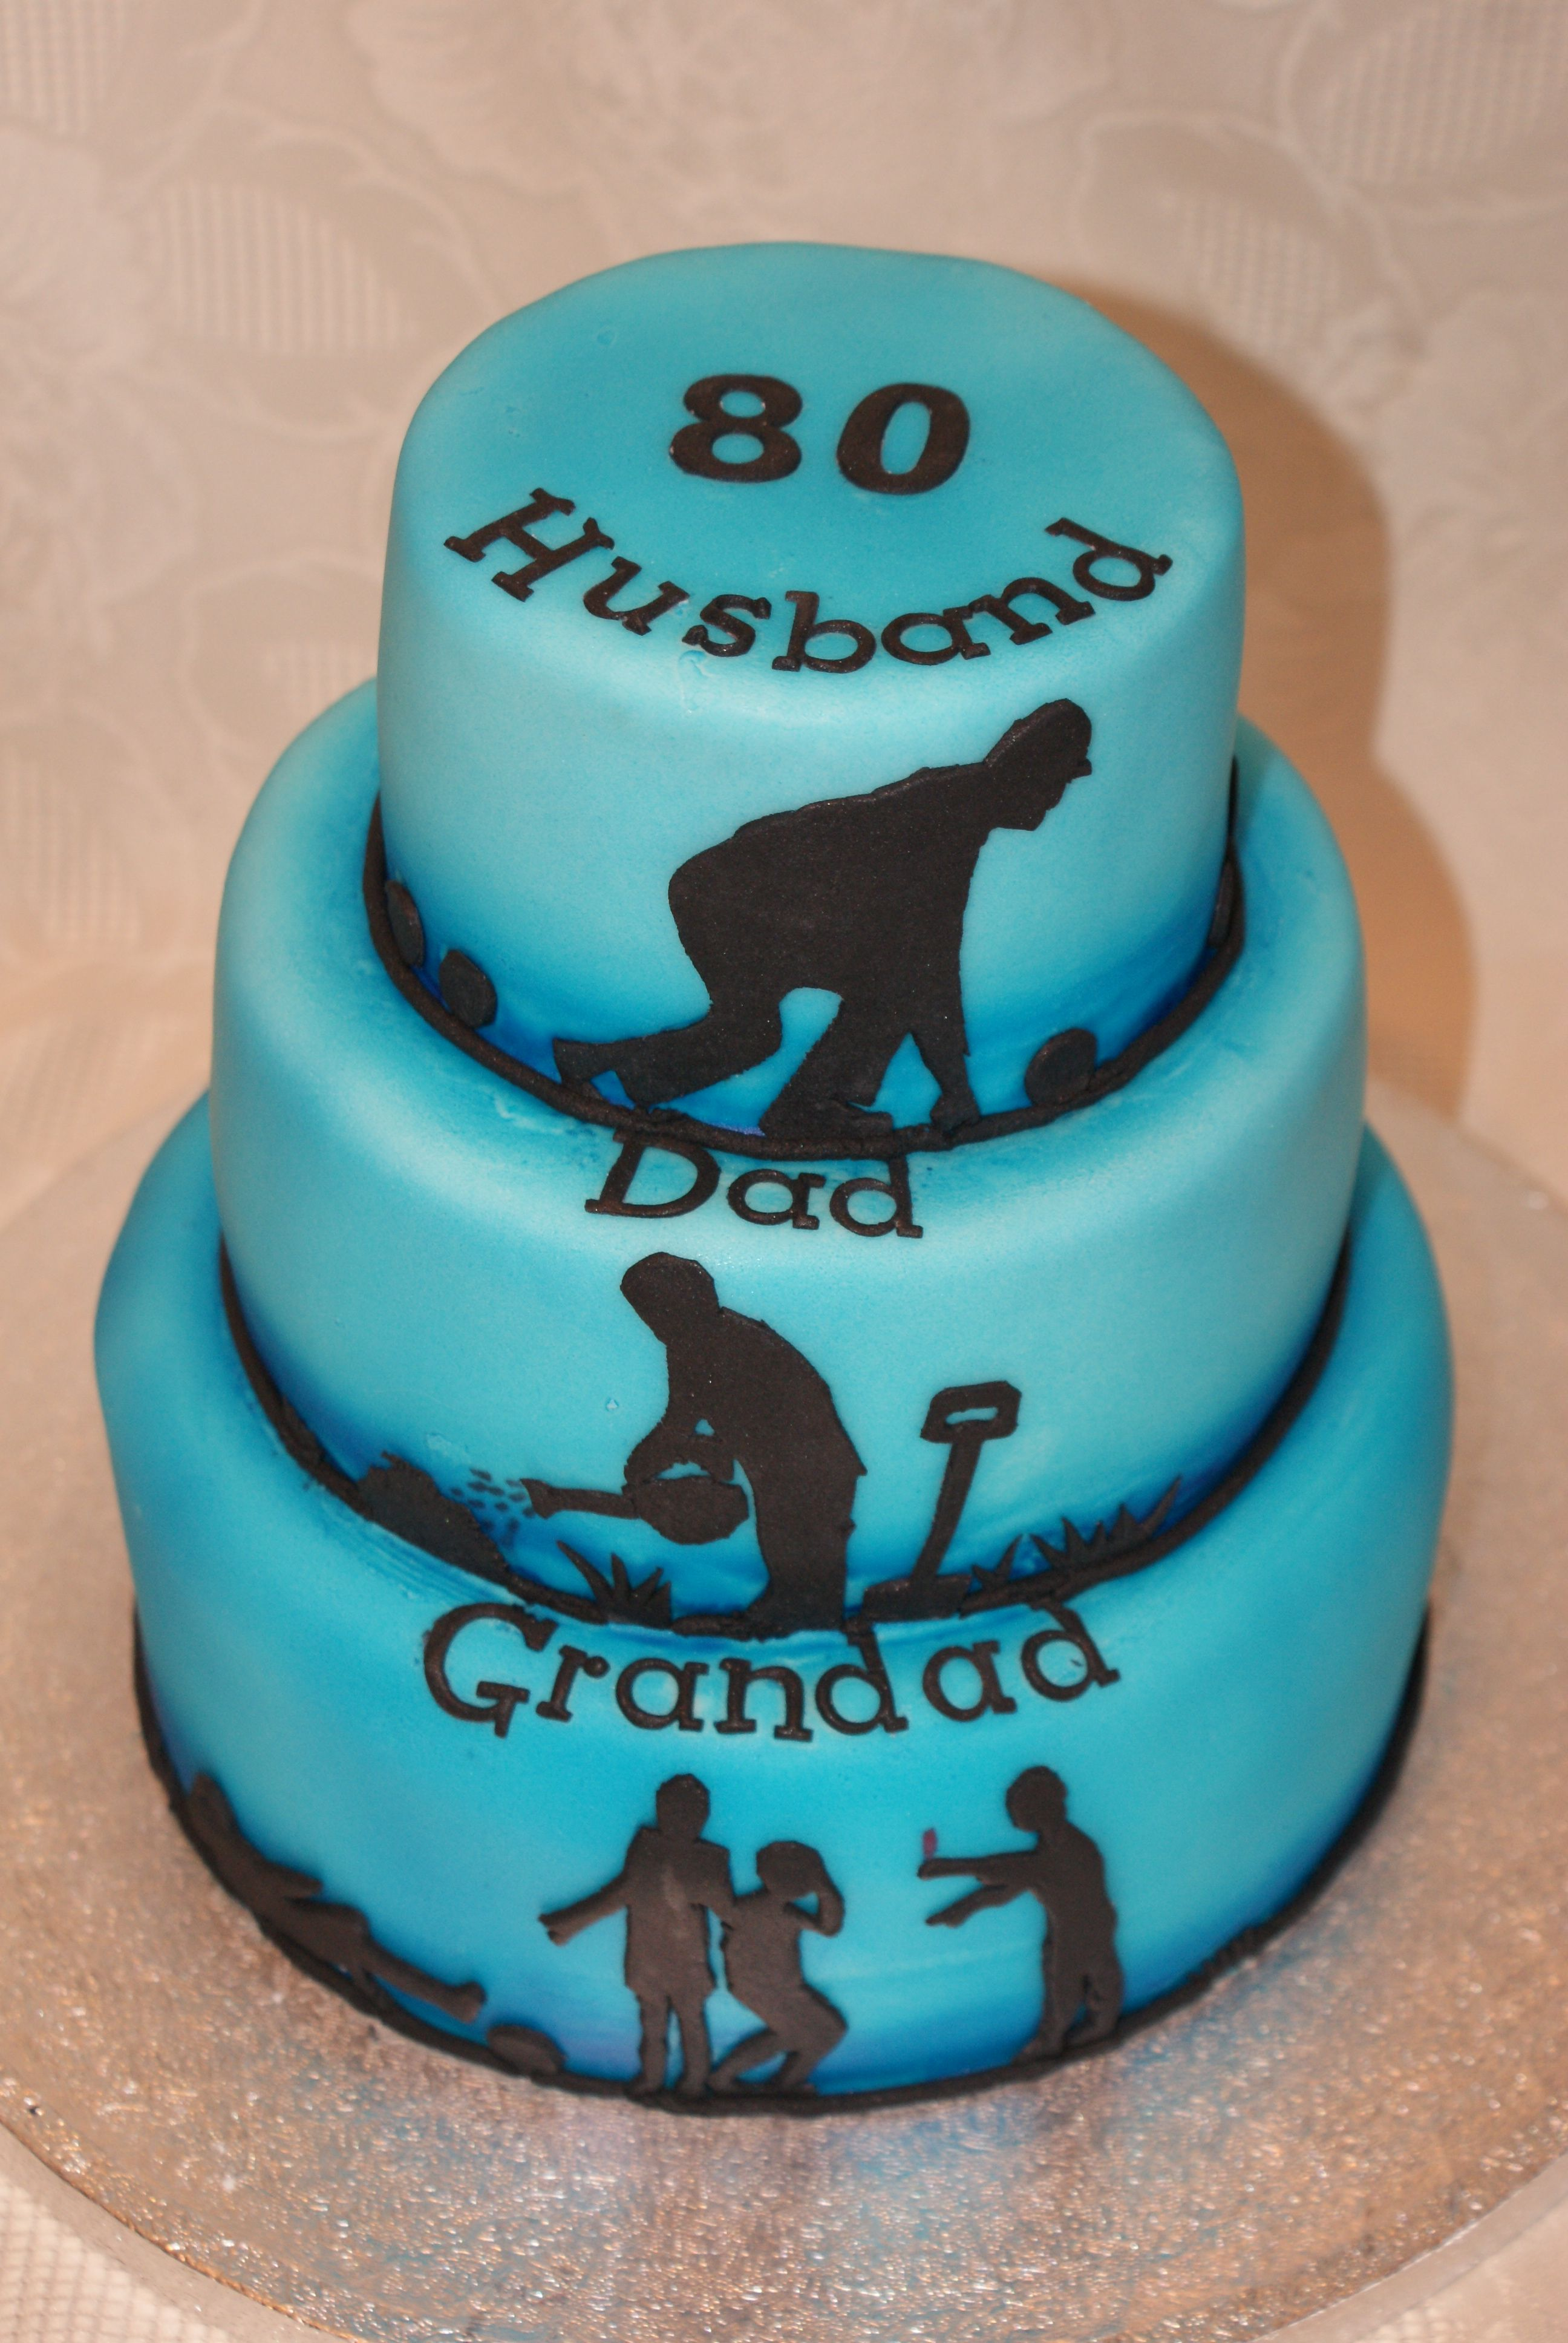 80th Birthday cake.Husband, Dad, Grandad tiered cake with ...